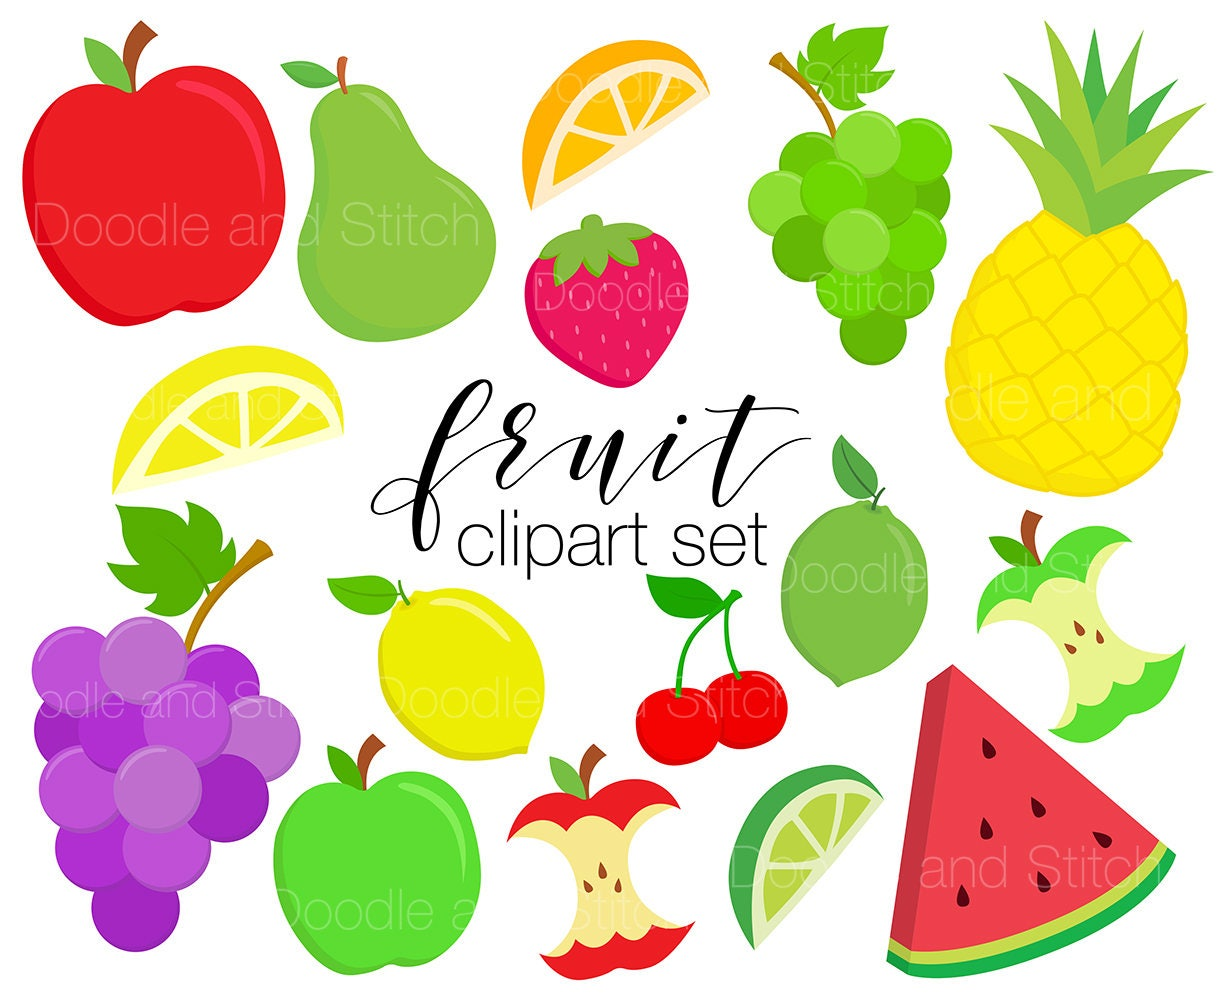 pineapple with sunglasses clipart. fruit clipart designs, colourful fruity clip art pictures, tropical food vector illustrations, watermelon pineapple with sunglasses